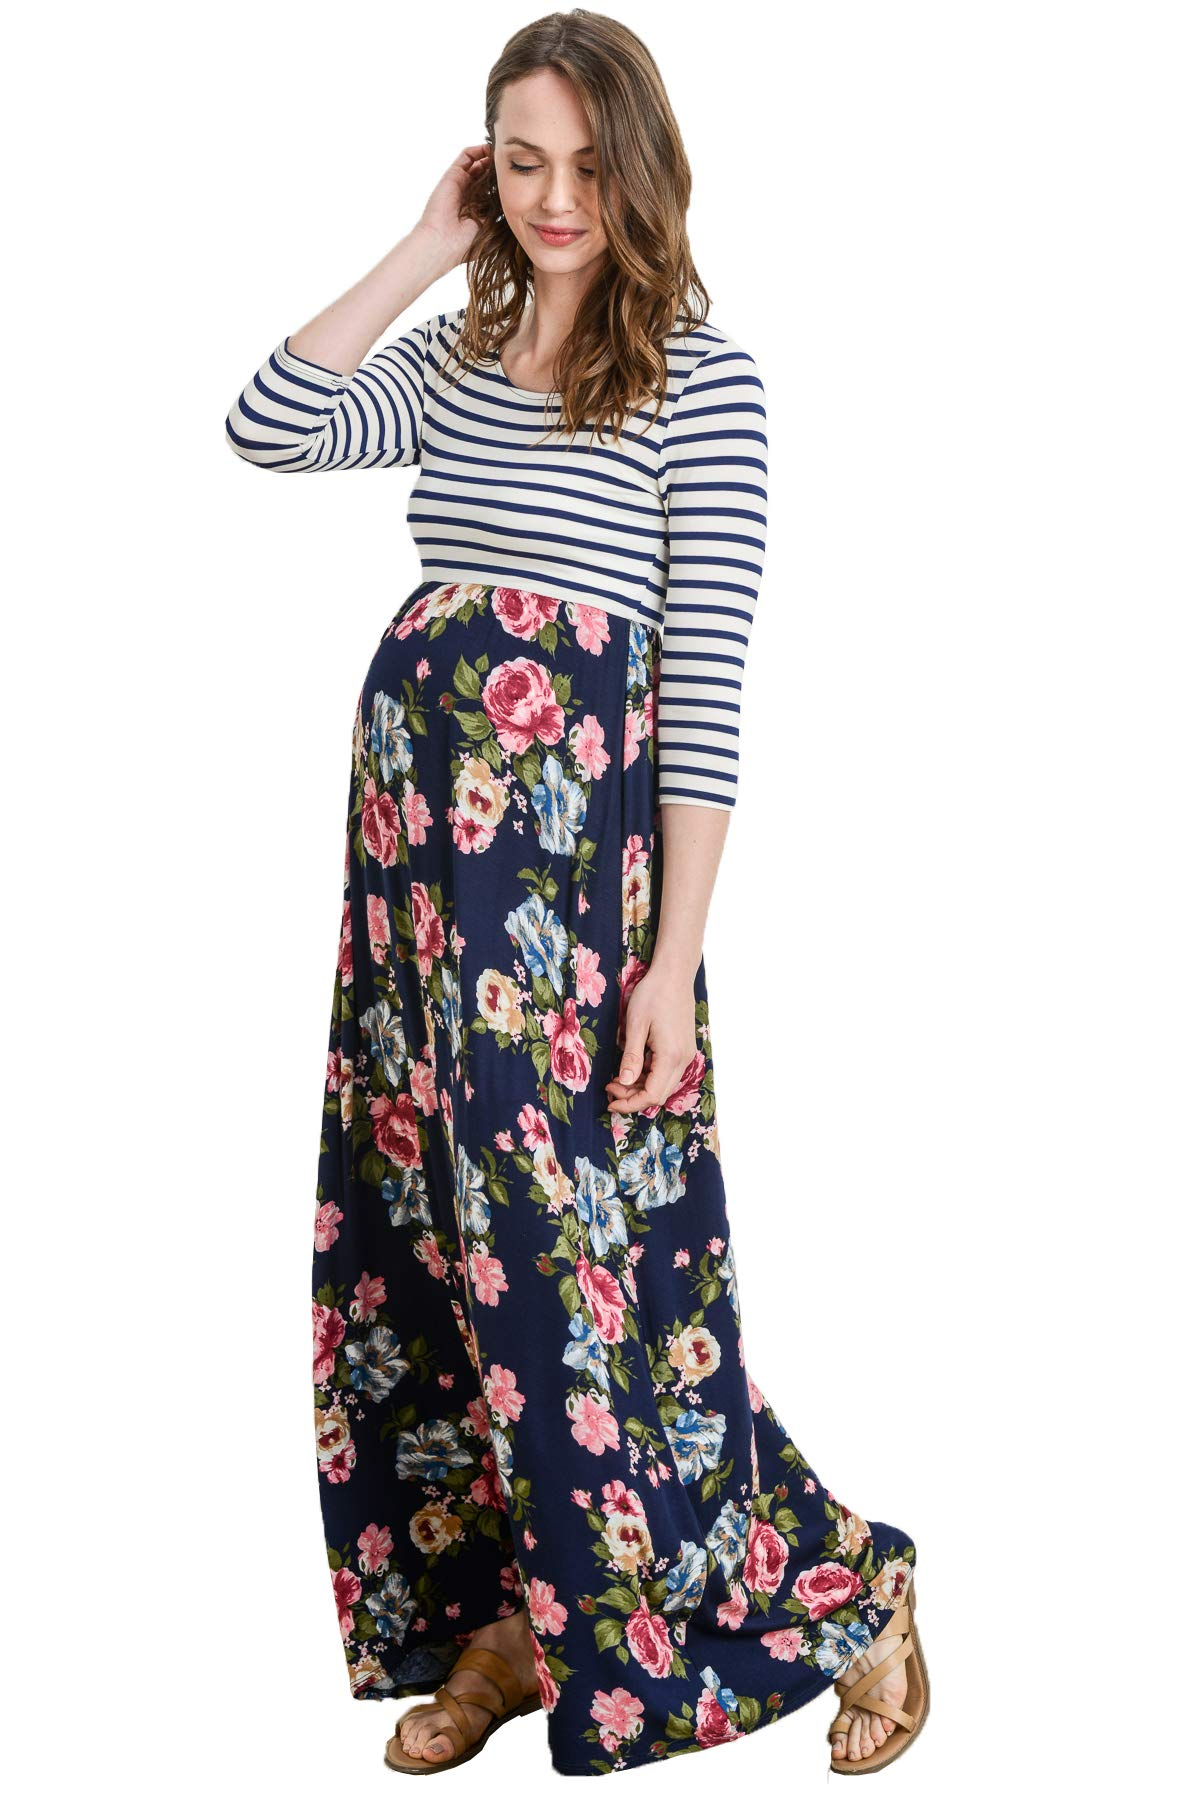 Hello MIZ Women's Floral Color Block Stripe Maxi Maternity Dress - Made in USA (Navy/Pink Flower, L)